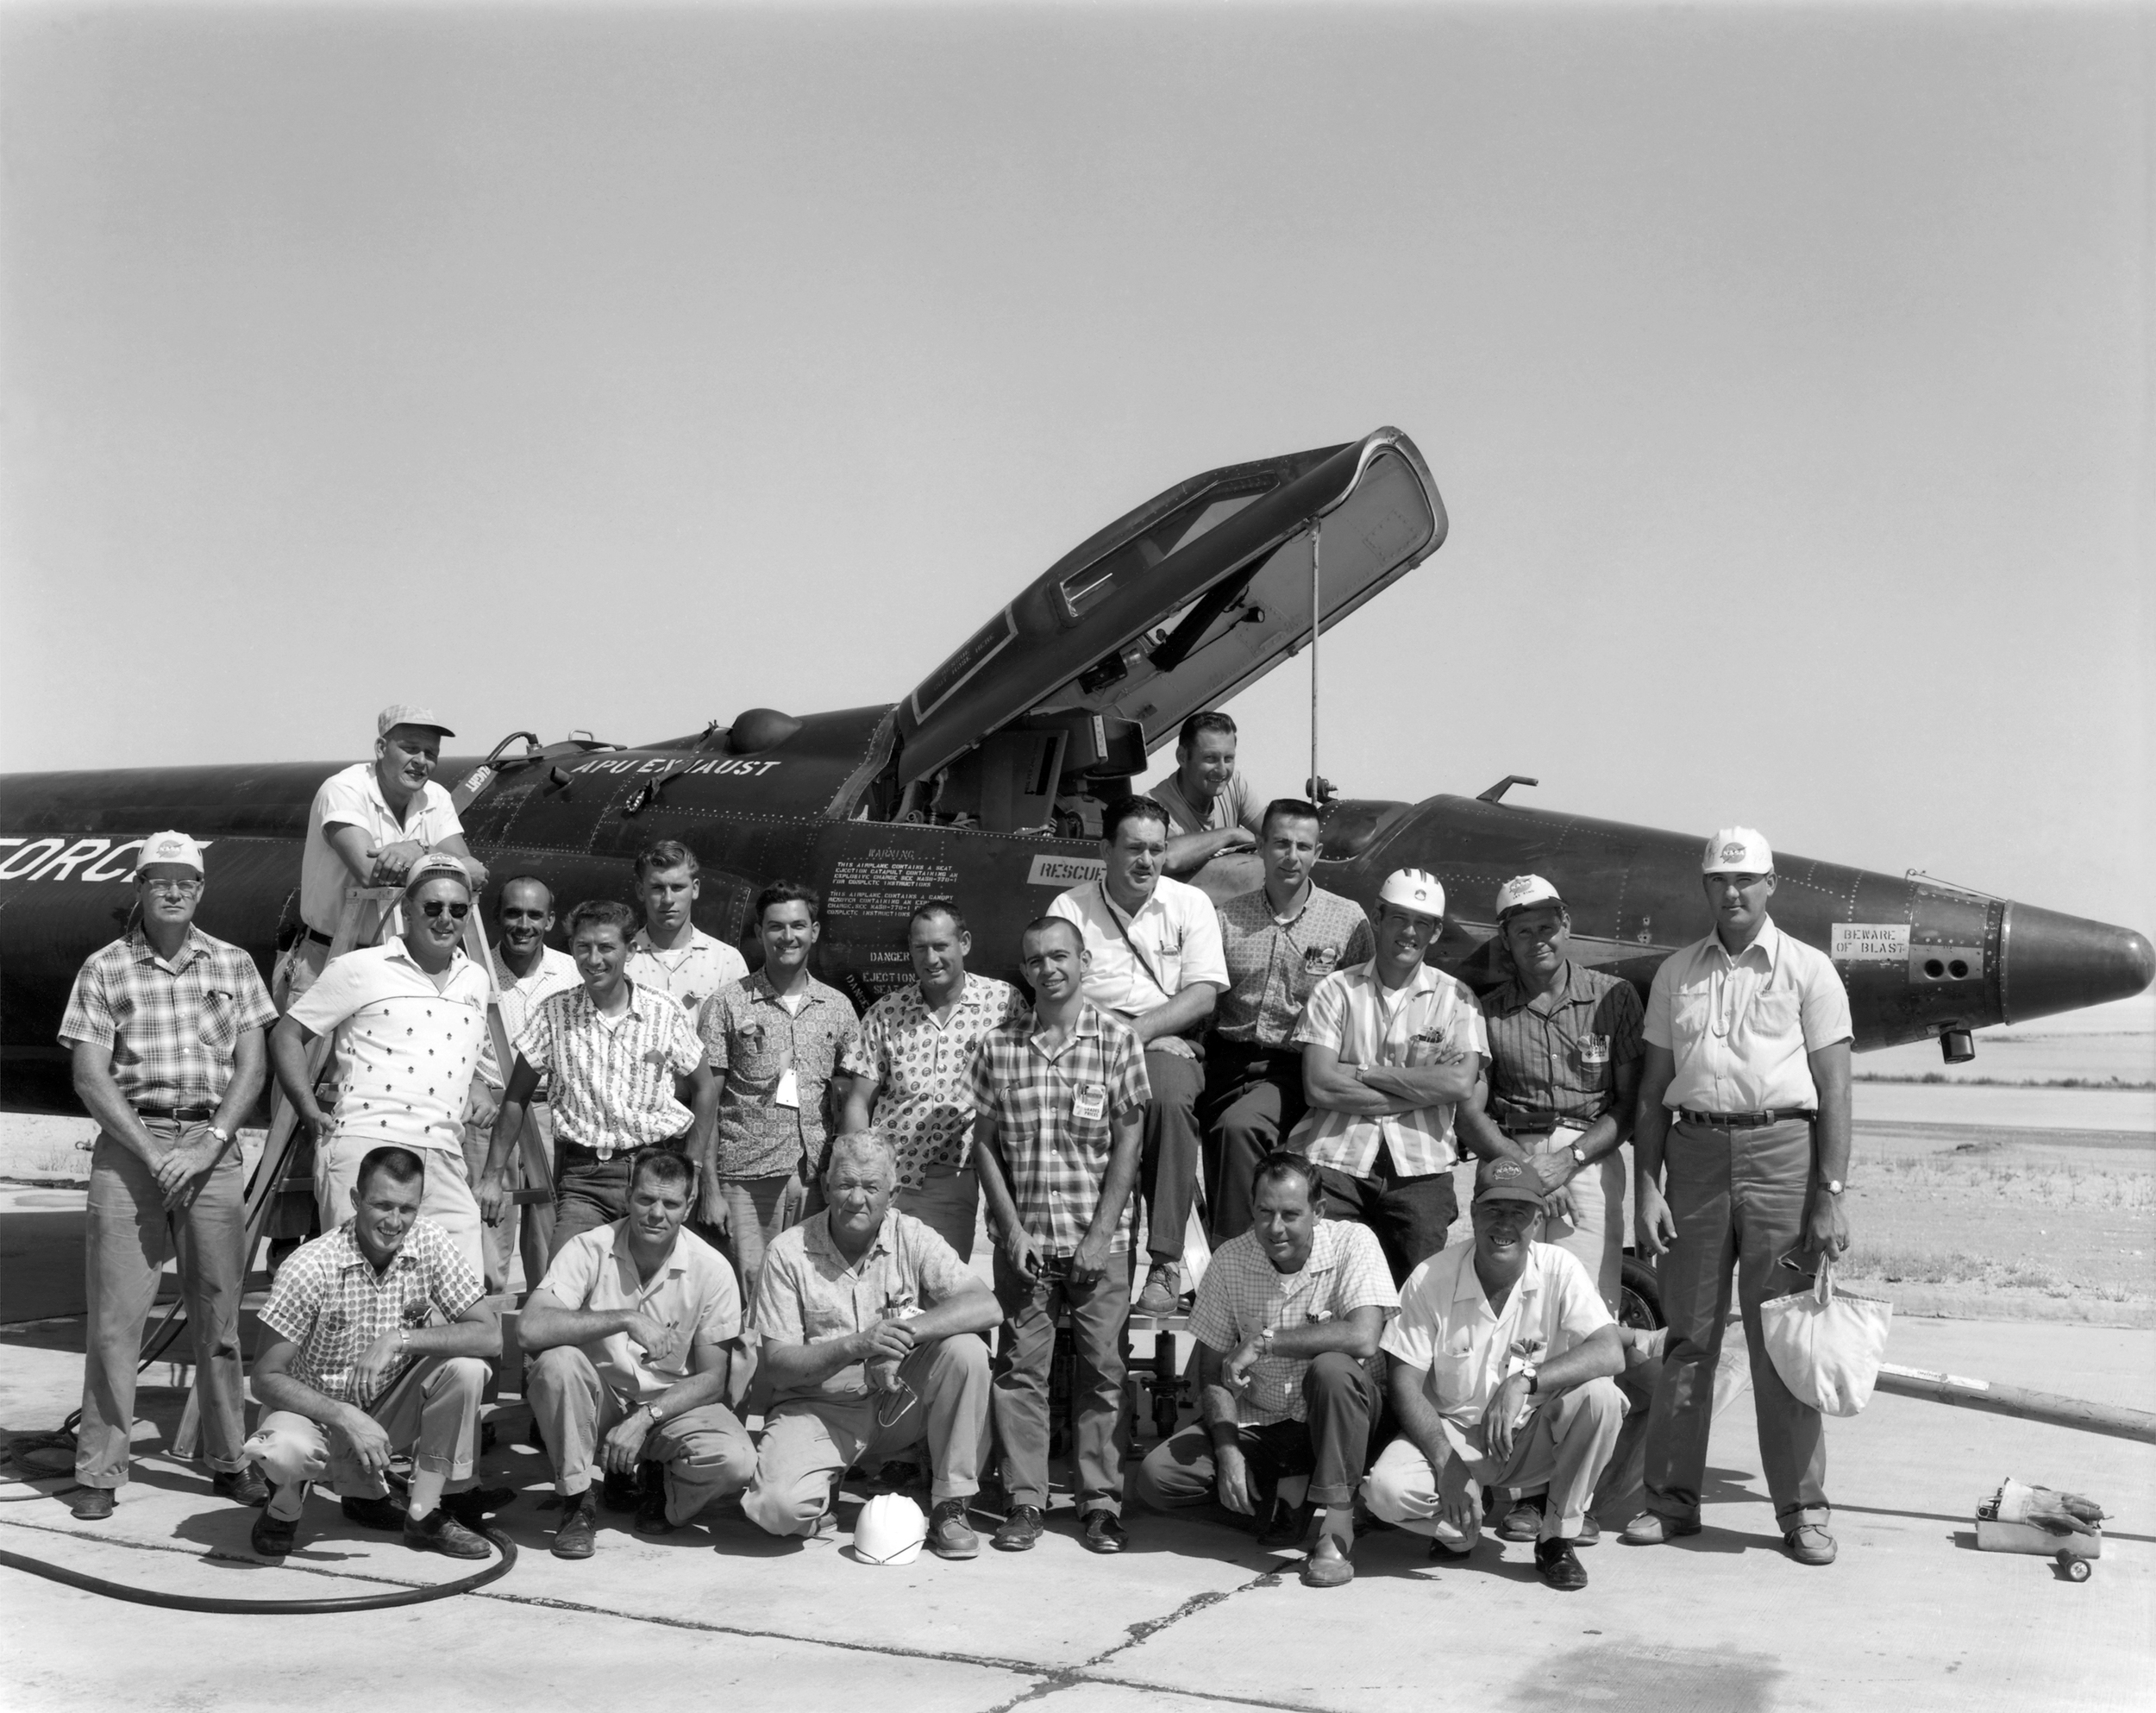 X-15 personnel July 1962. (NASA)